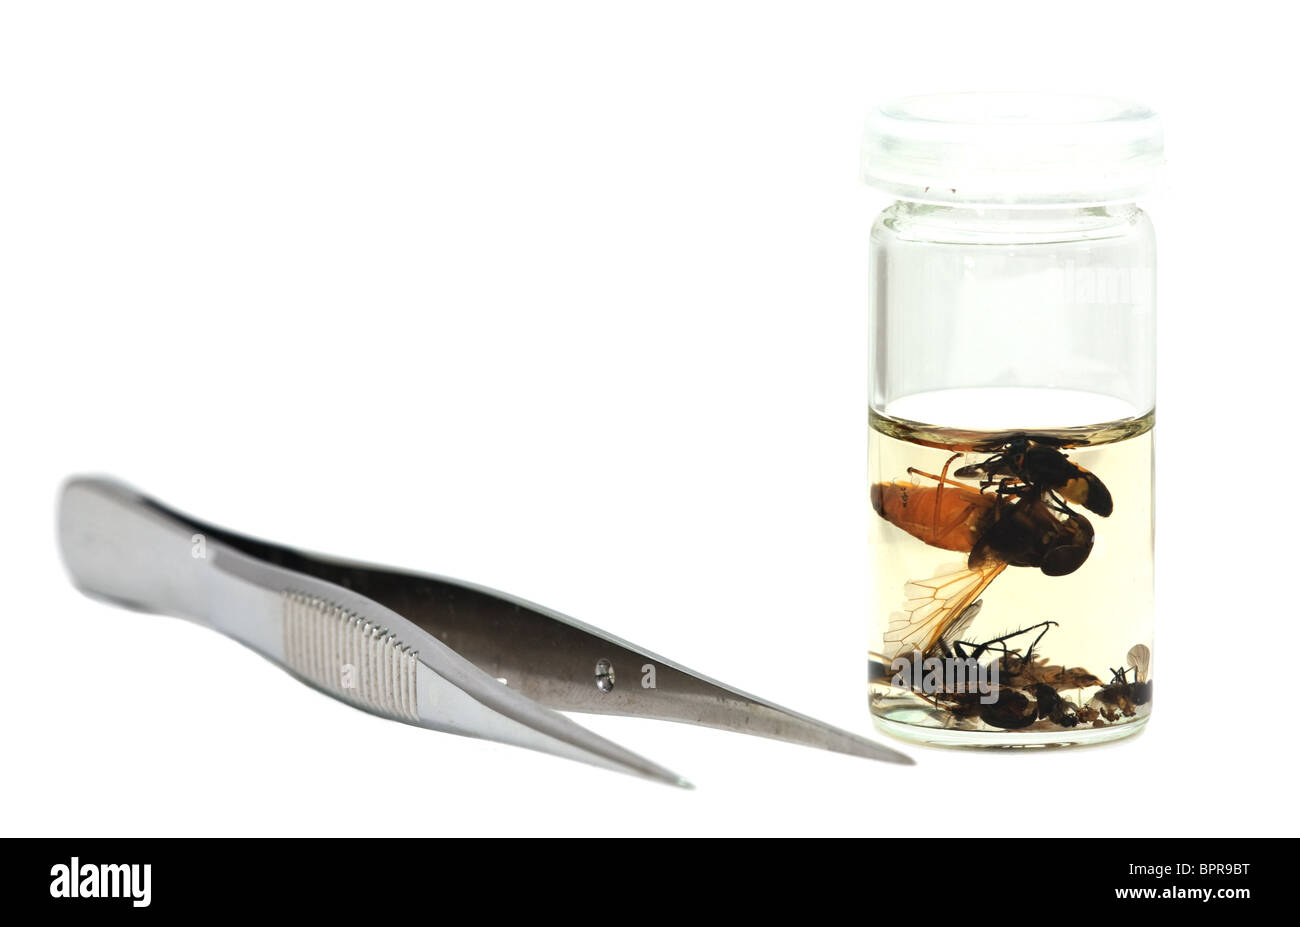 Isolated pincer and glass tube with insects on white. - Stock Image